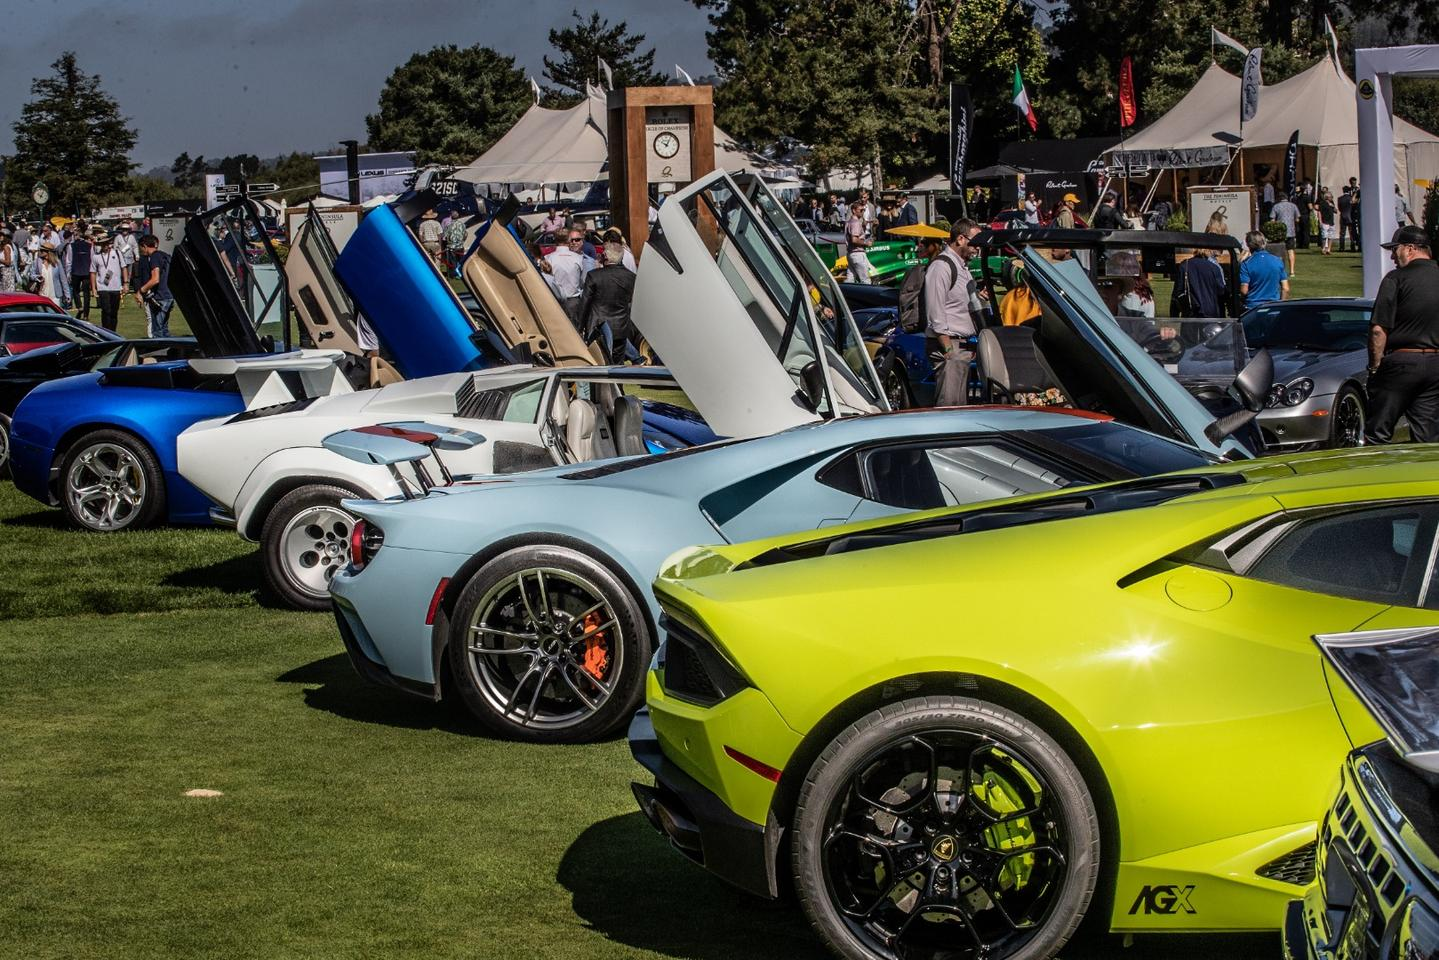 Supercars line up at The Quail